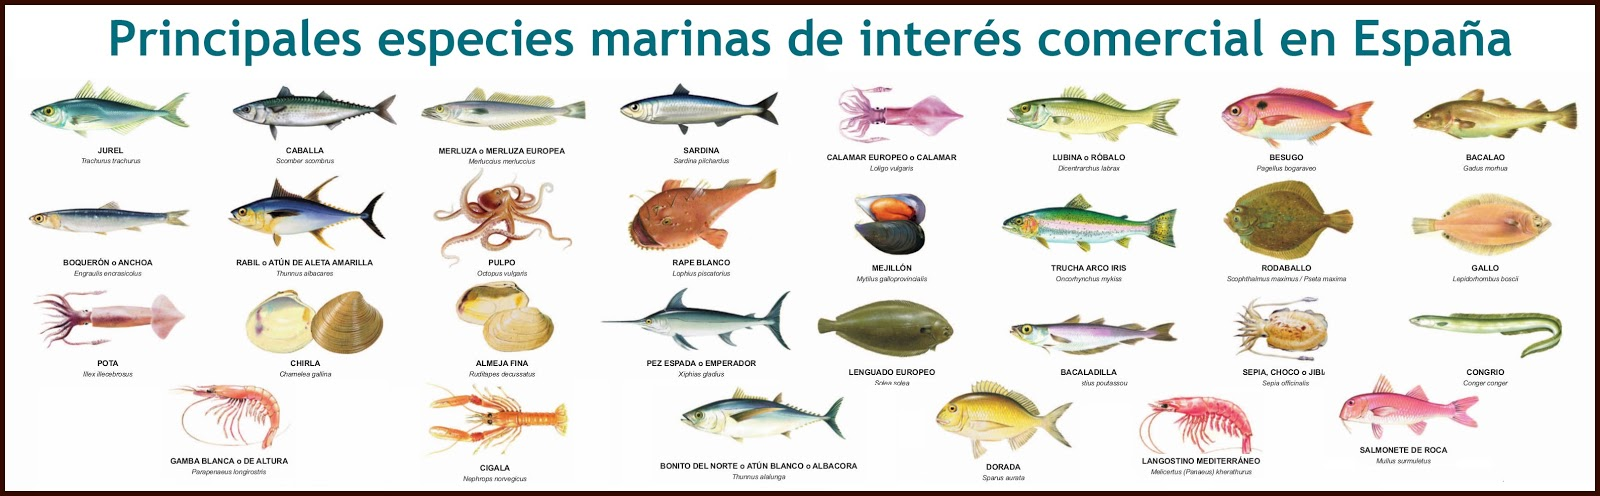 Naturarchives biodiversidad el reino de los animales for Especies de peces